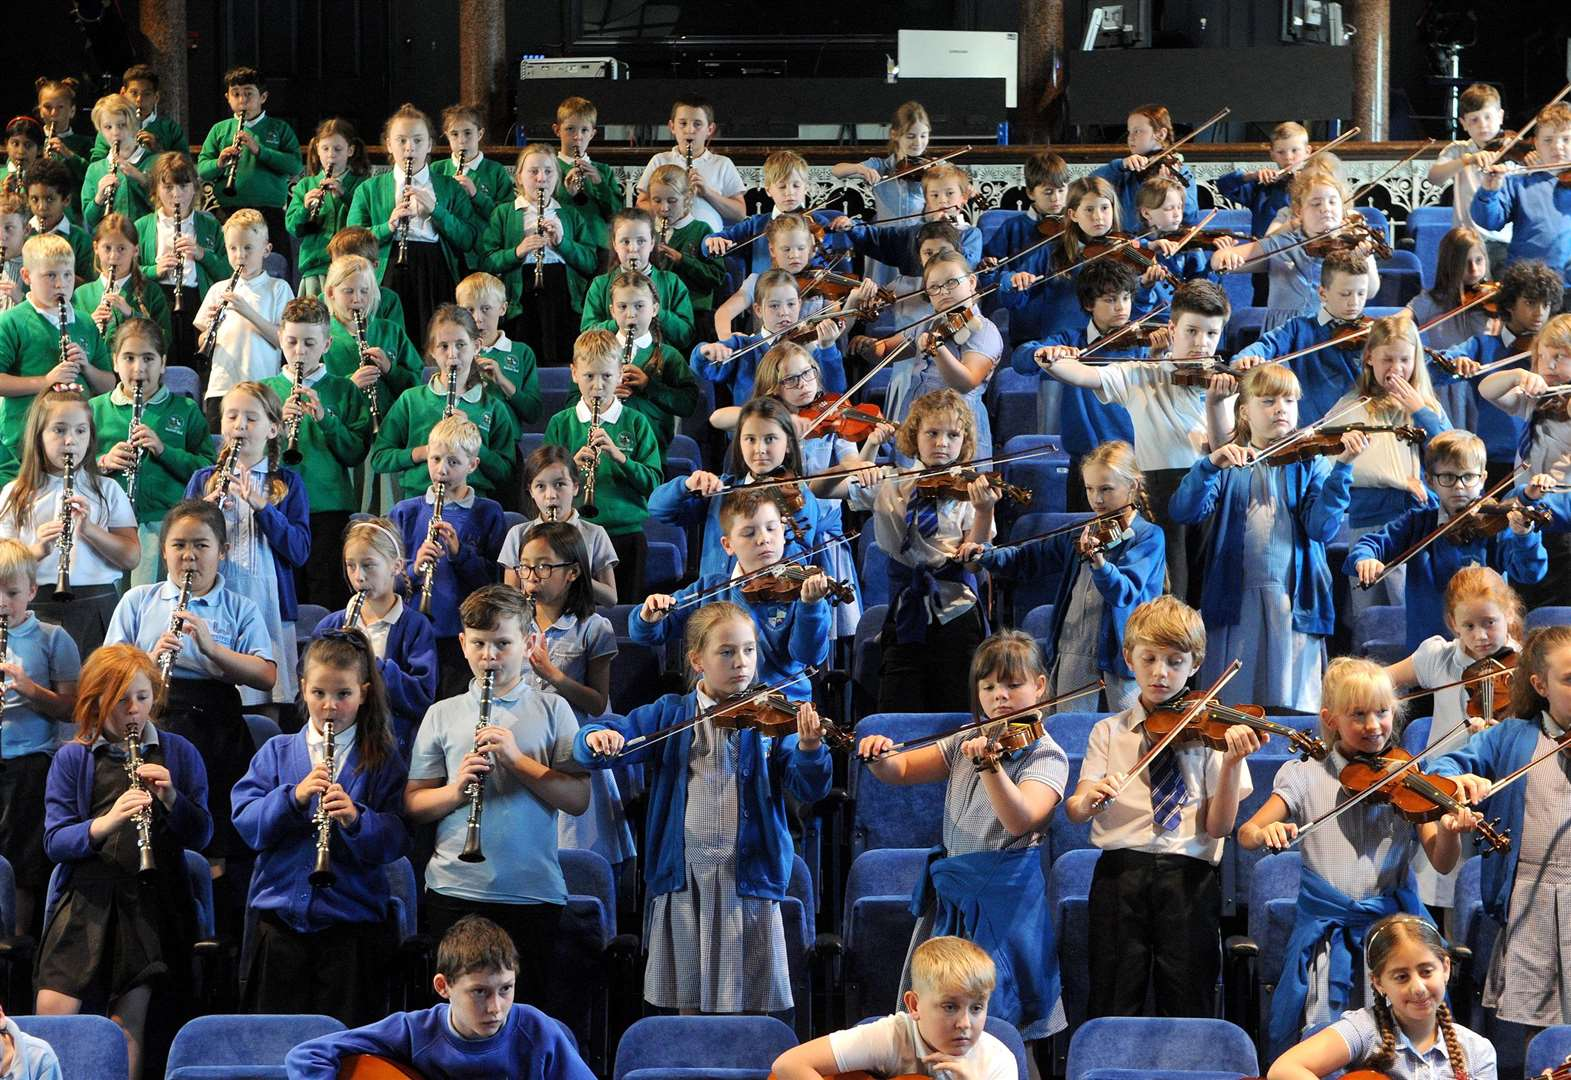 Haverhill primary schools give shared concert as part of a county music festival